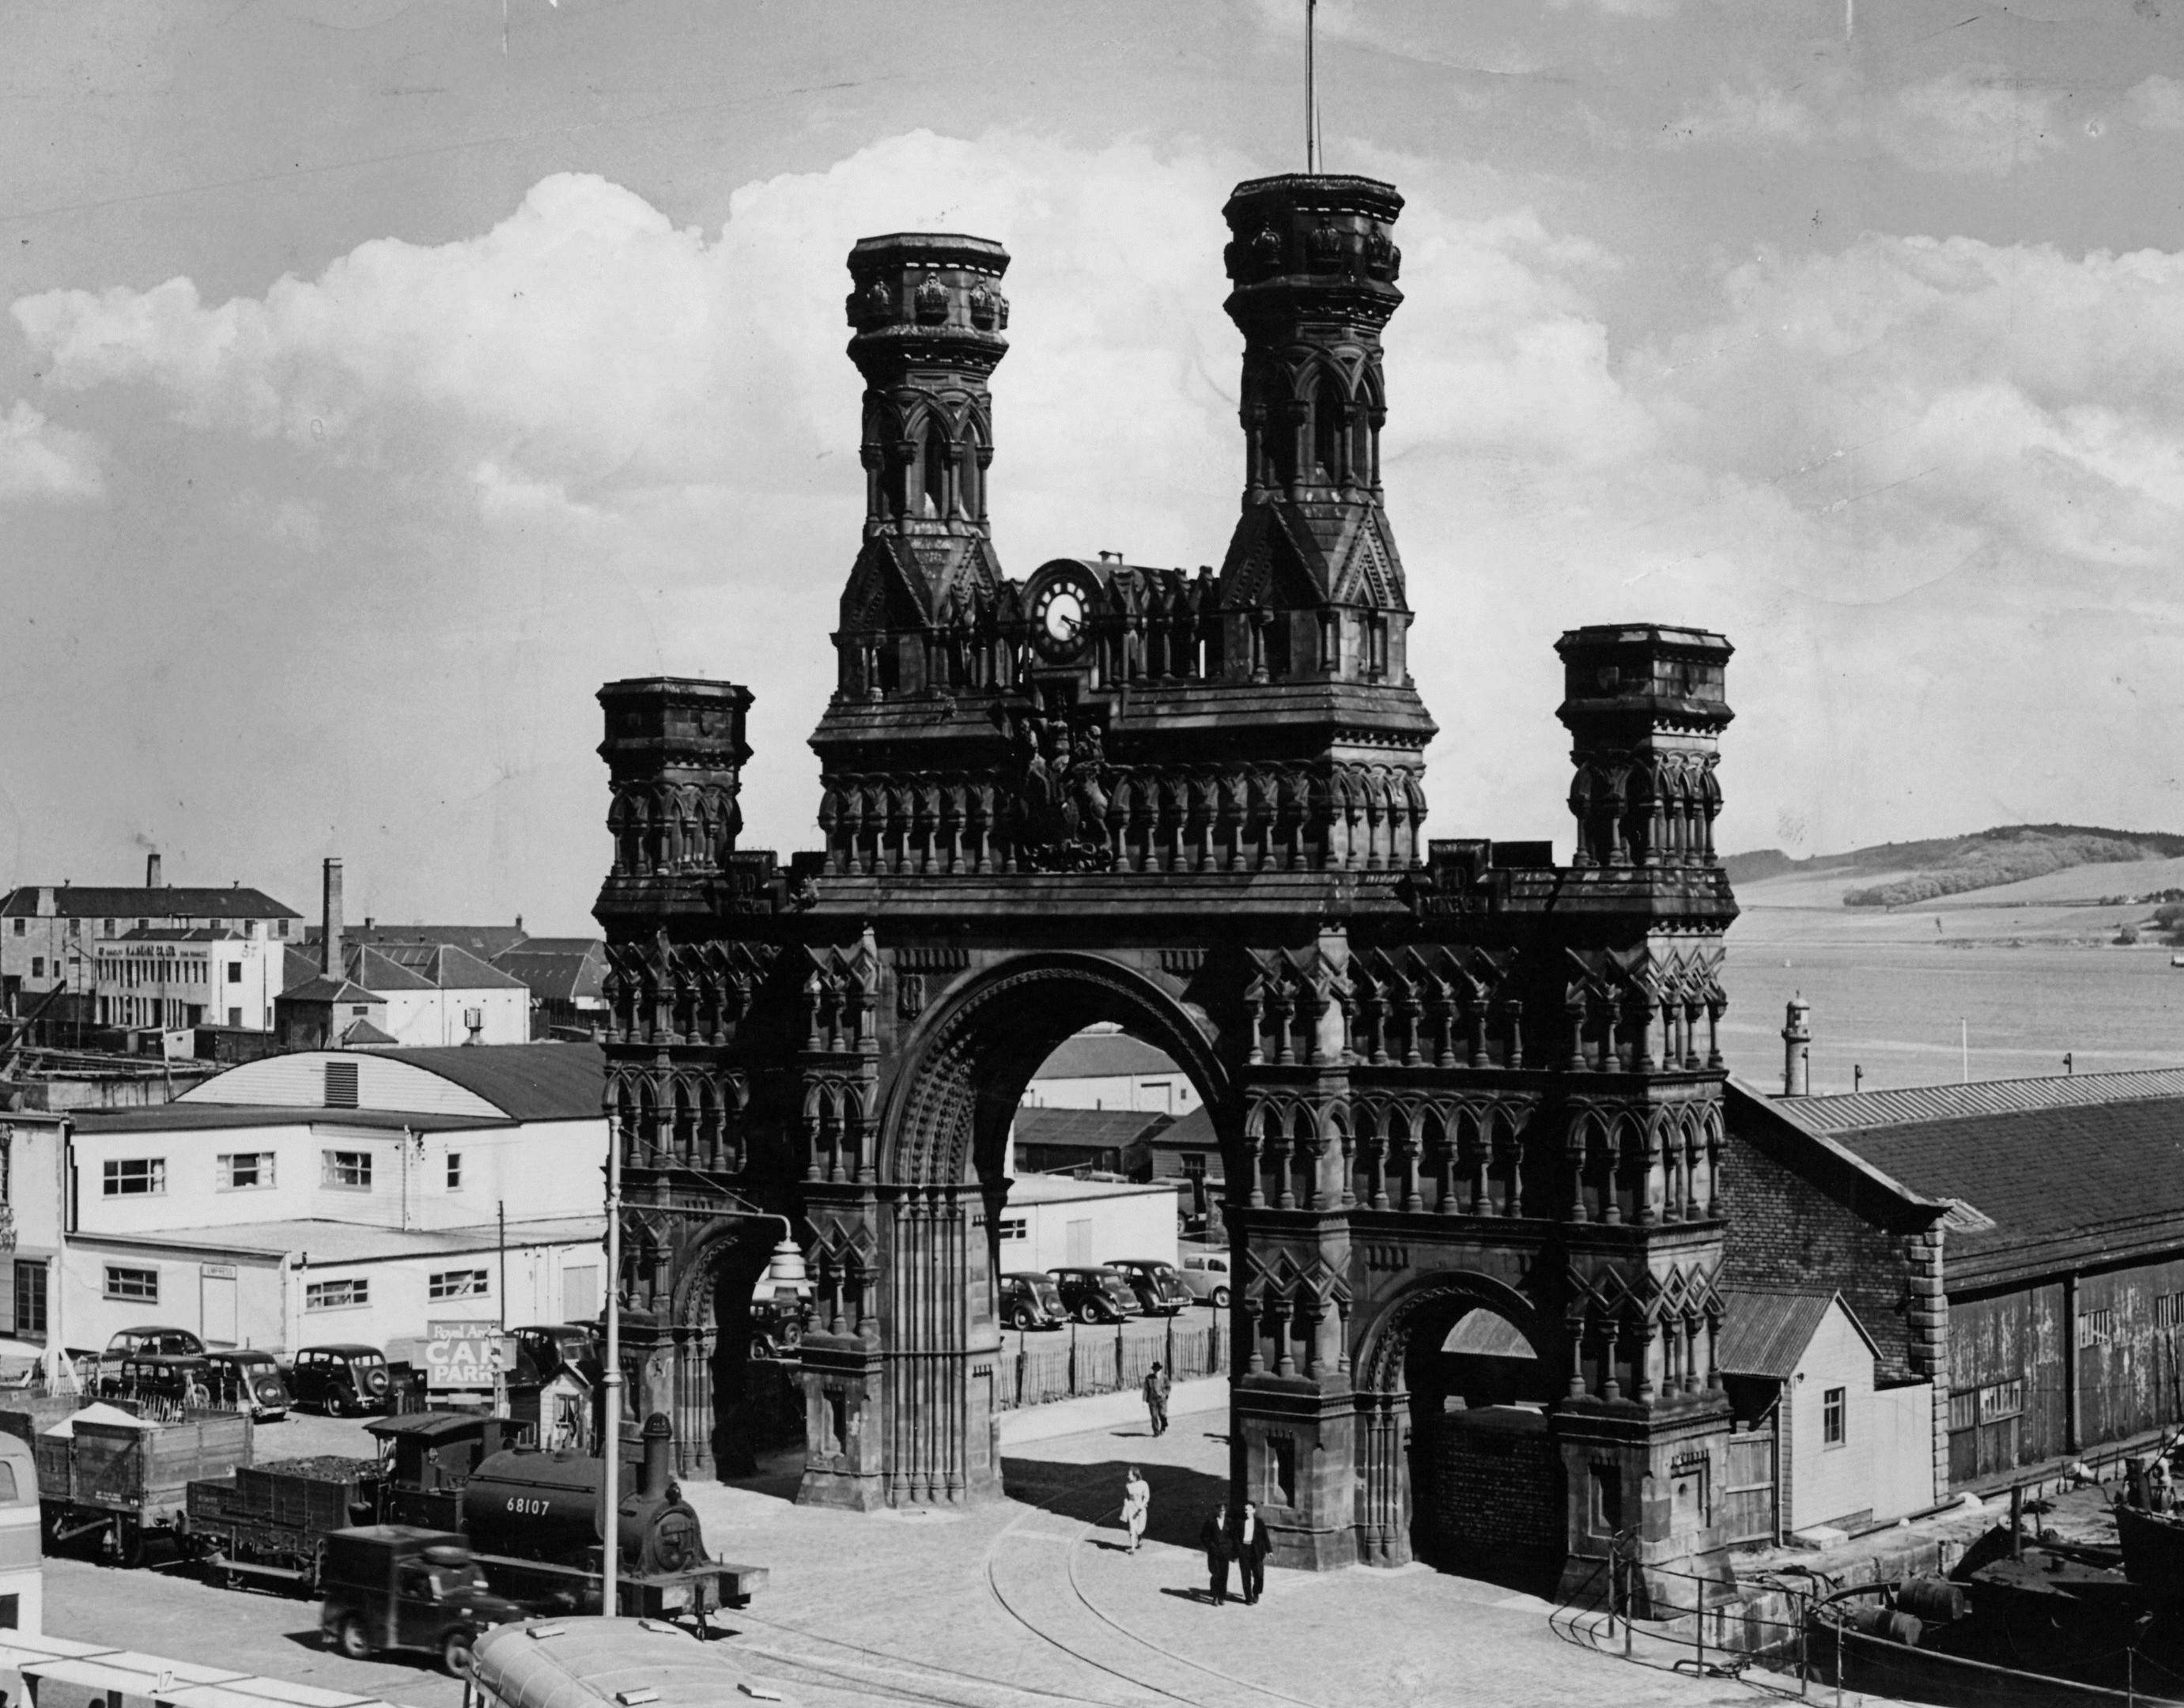 The Royal Arch once stood tall at the Waterfront